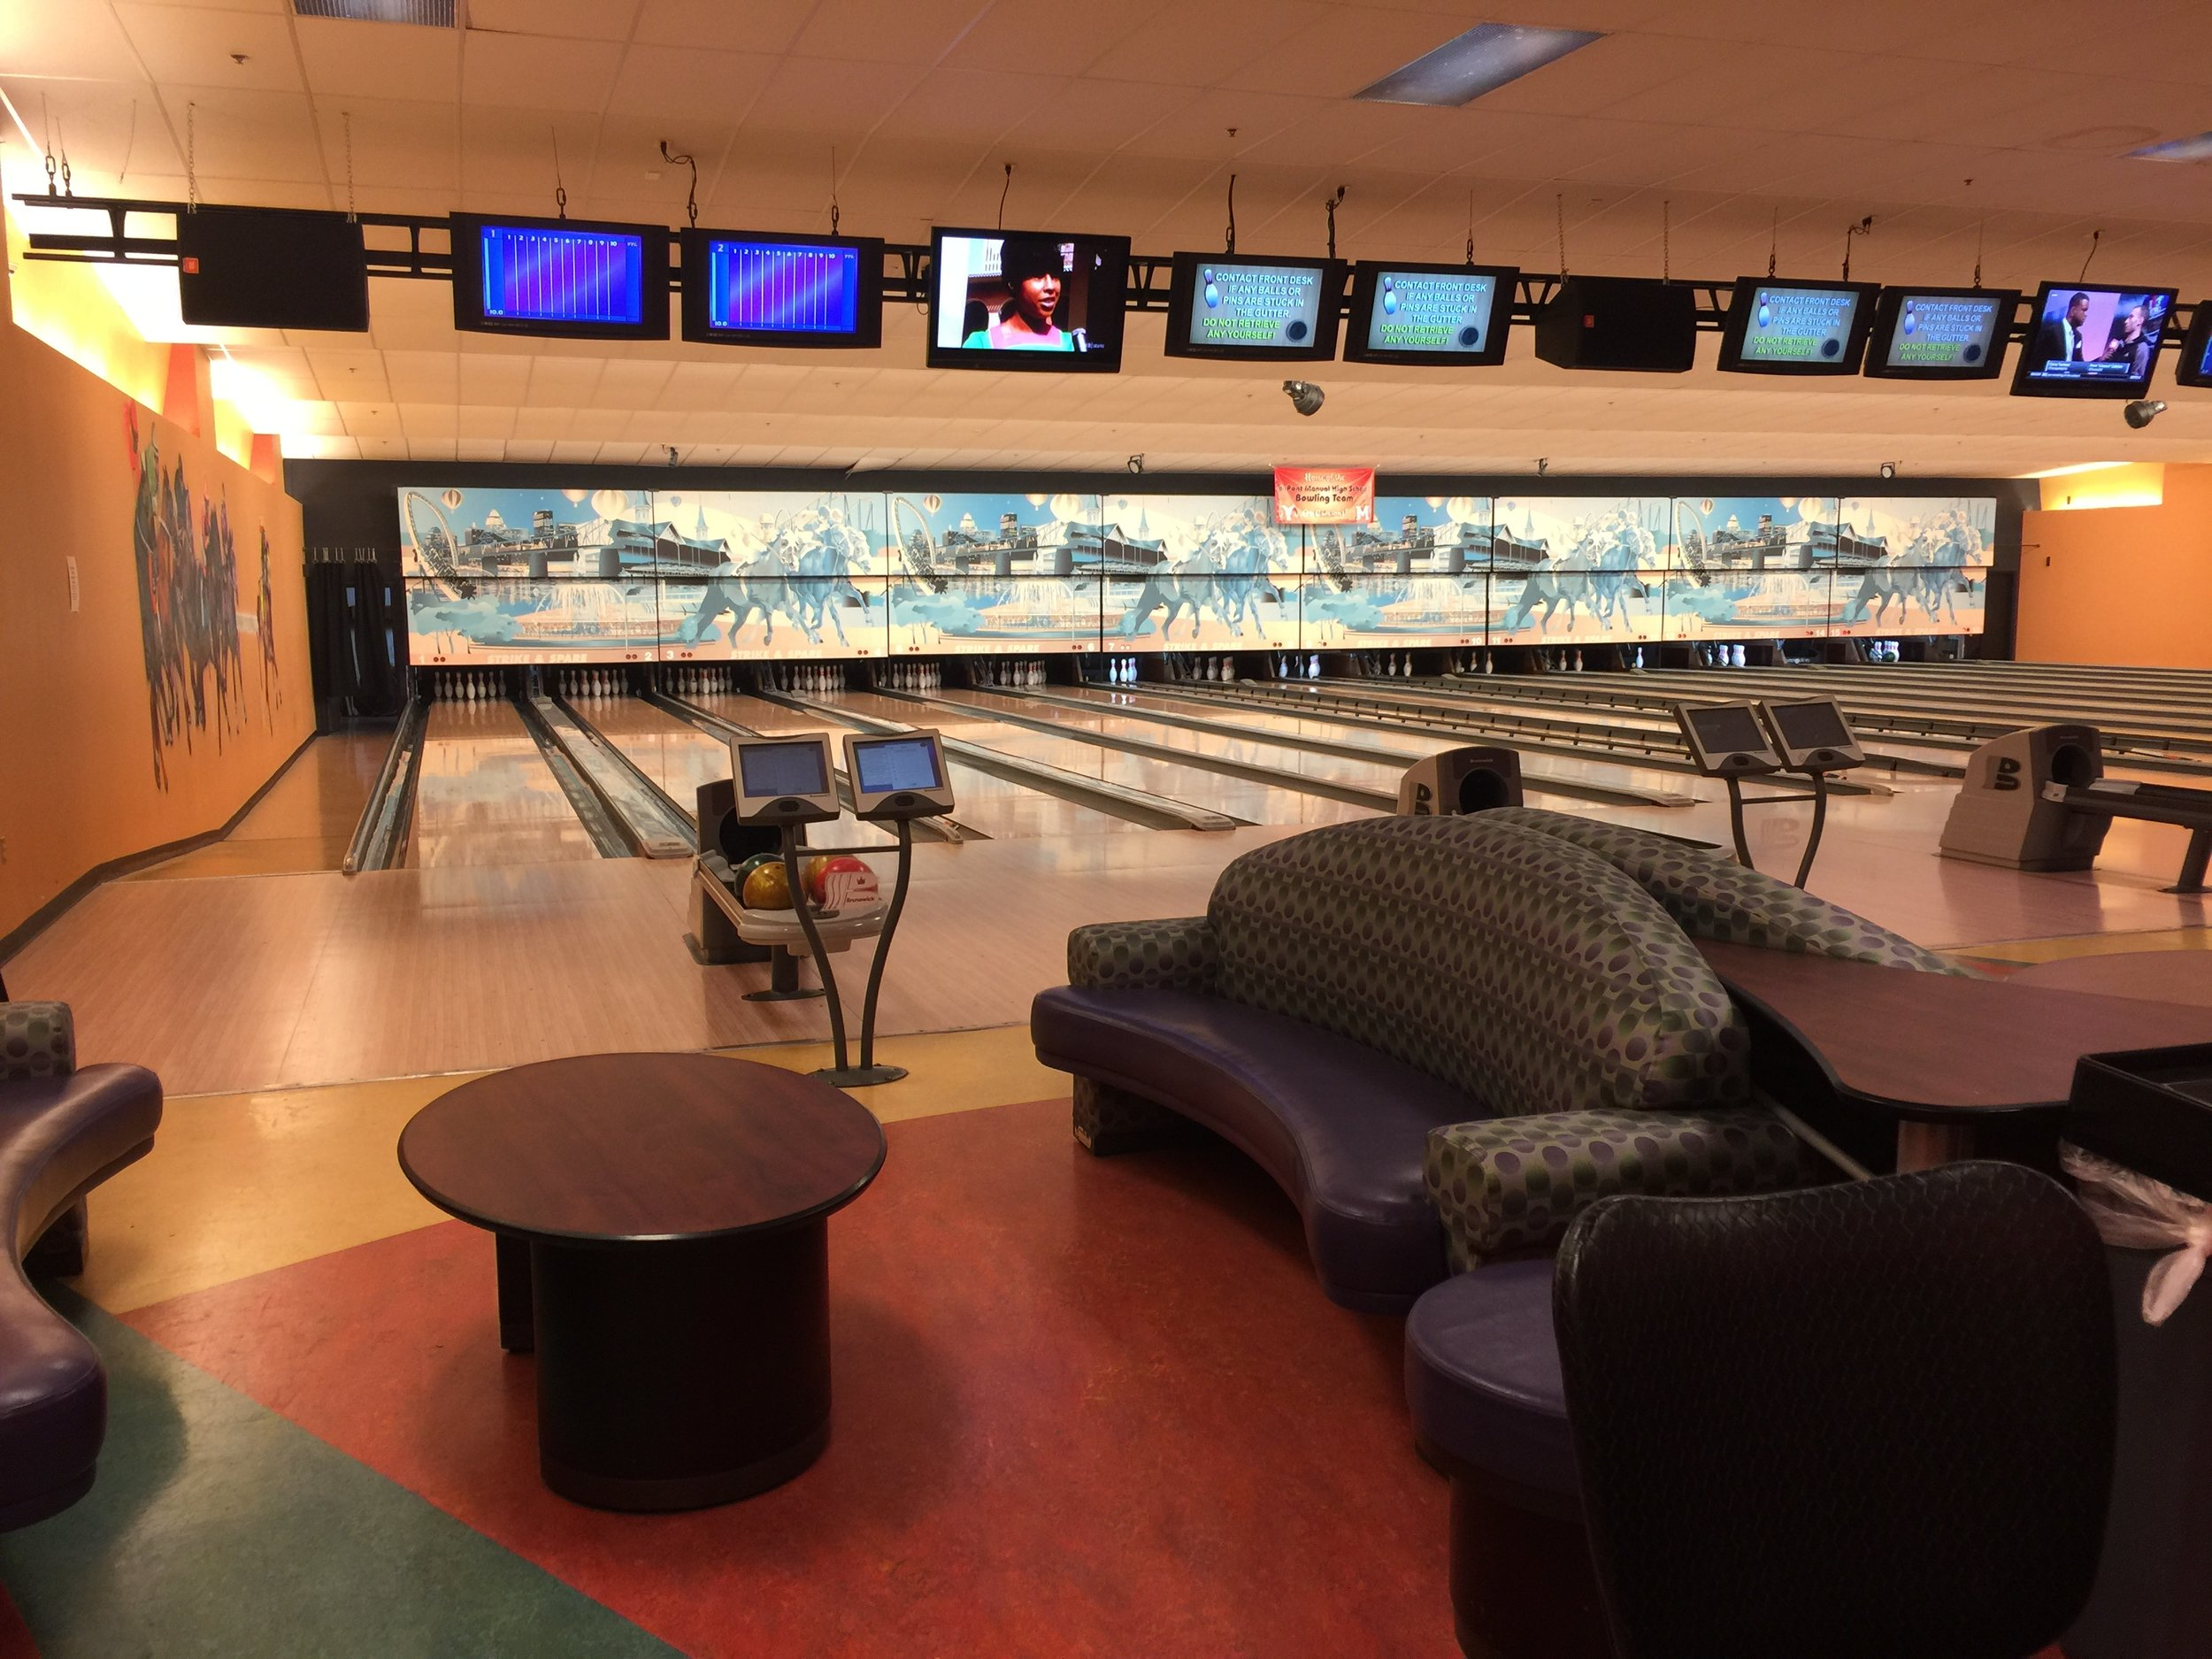 VIP Party Bowling Lanes